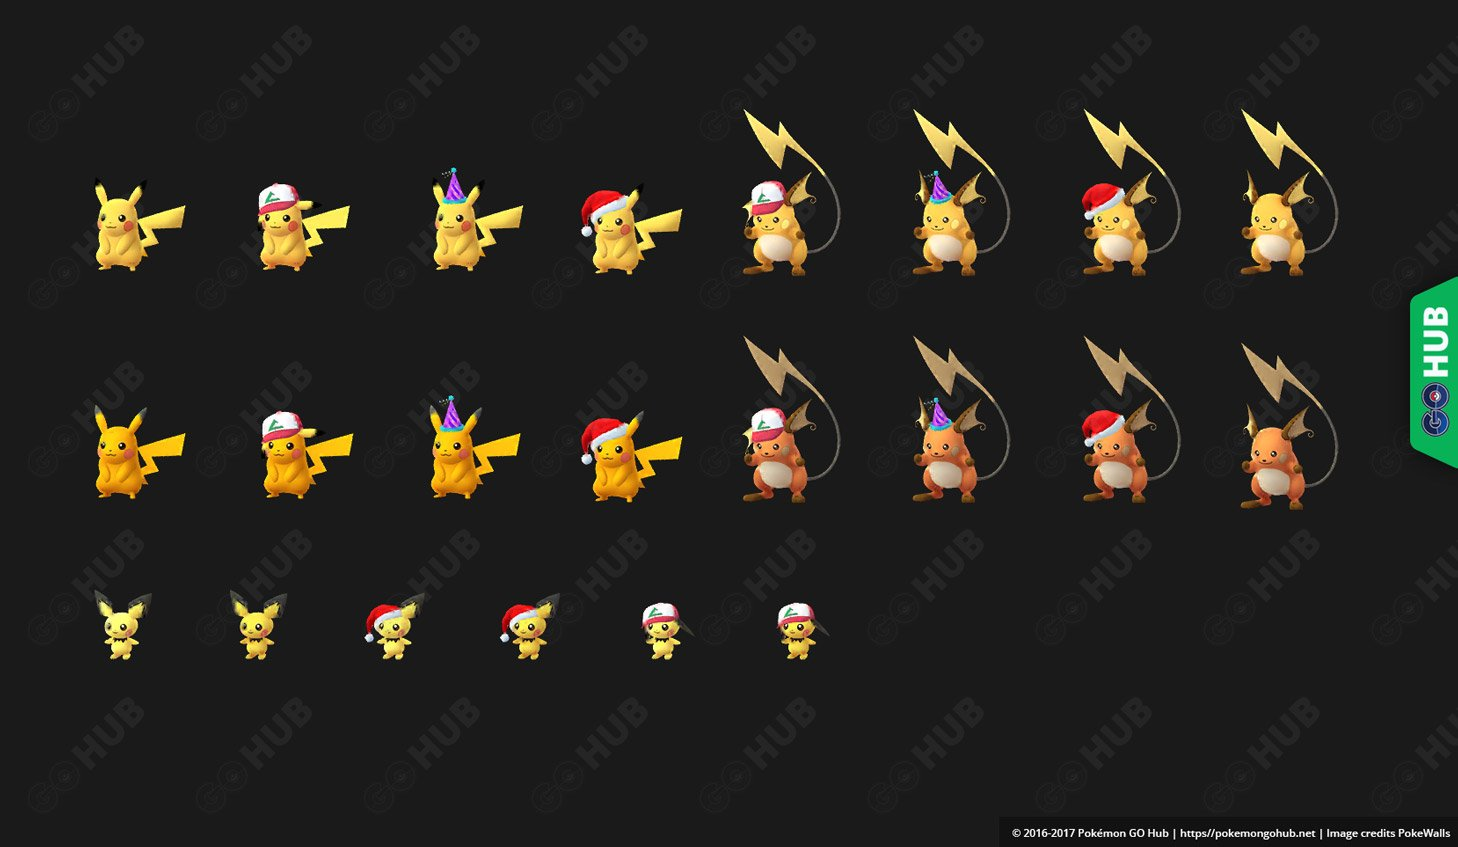 Shiny Pikachu Now Available Worldwide